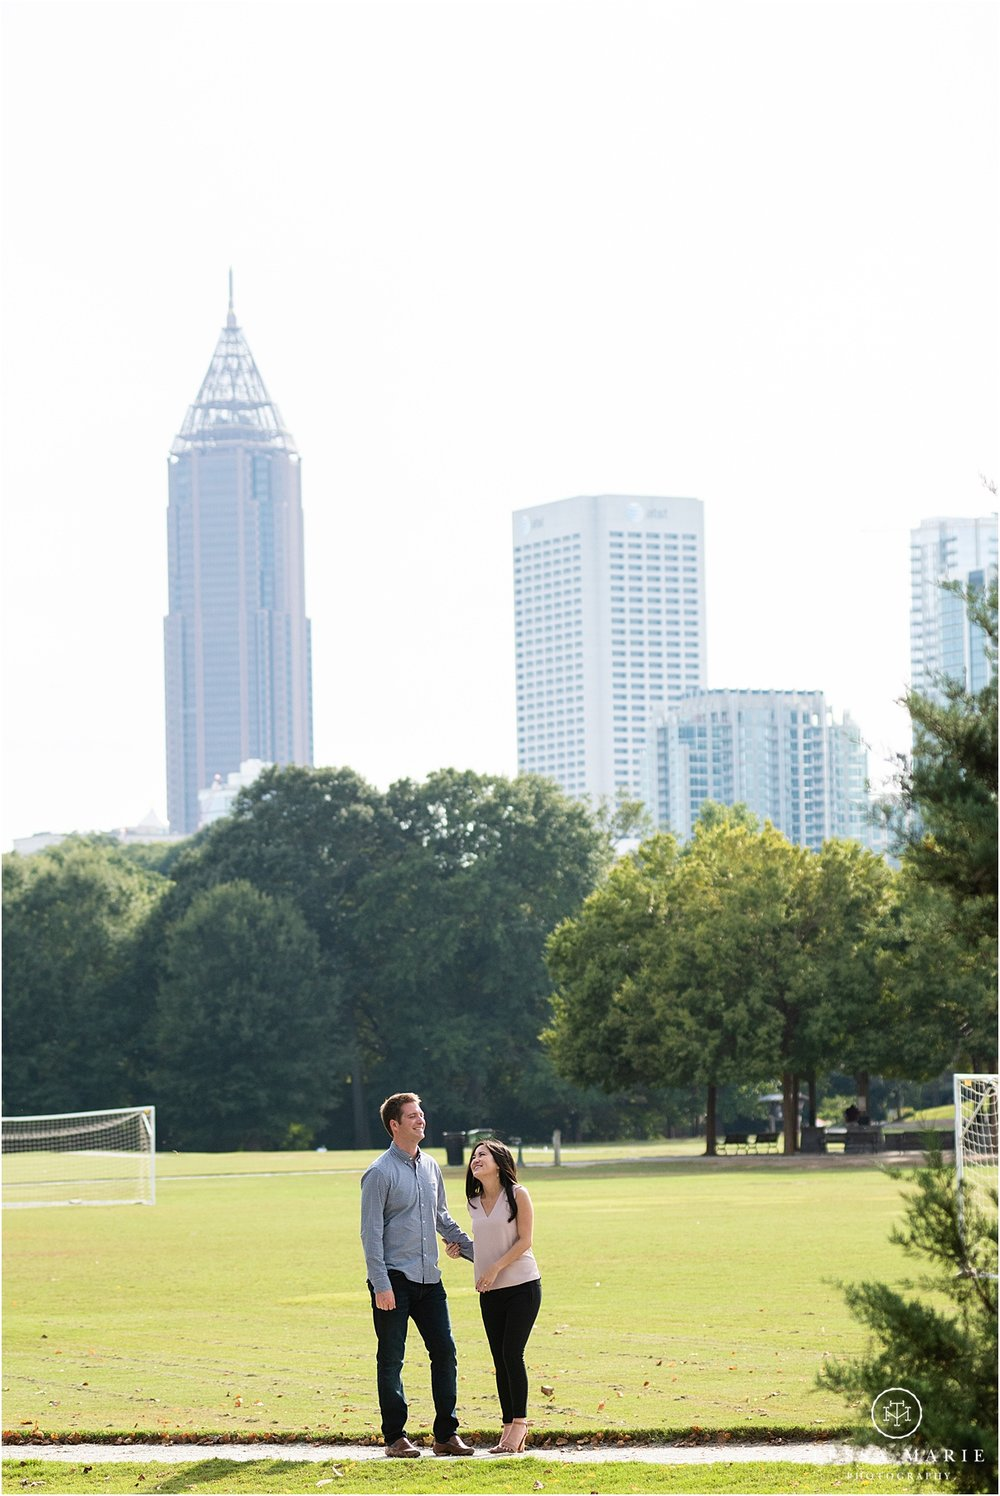 Tessa_marie_photography_wedding_photographer_engagement_pictures_piedmont_park_0011.jpg